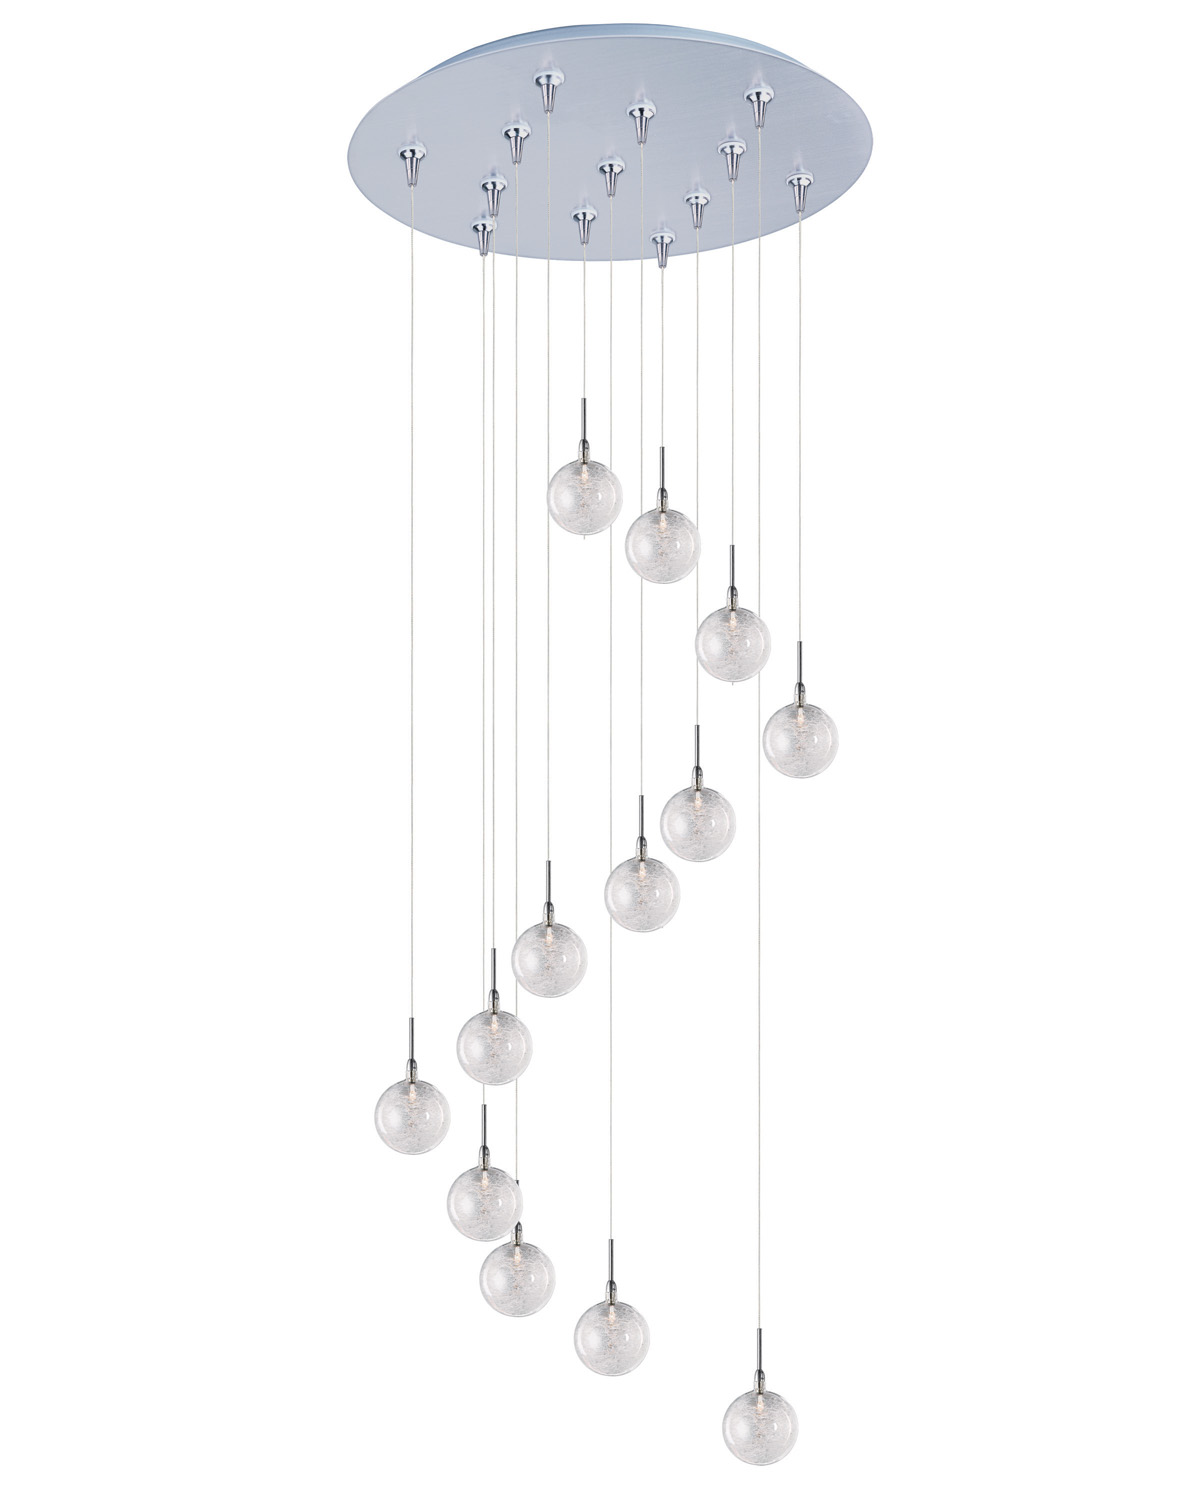 13 Light Pendant from the Starburst collection by ET2 E93872 79SN